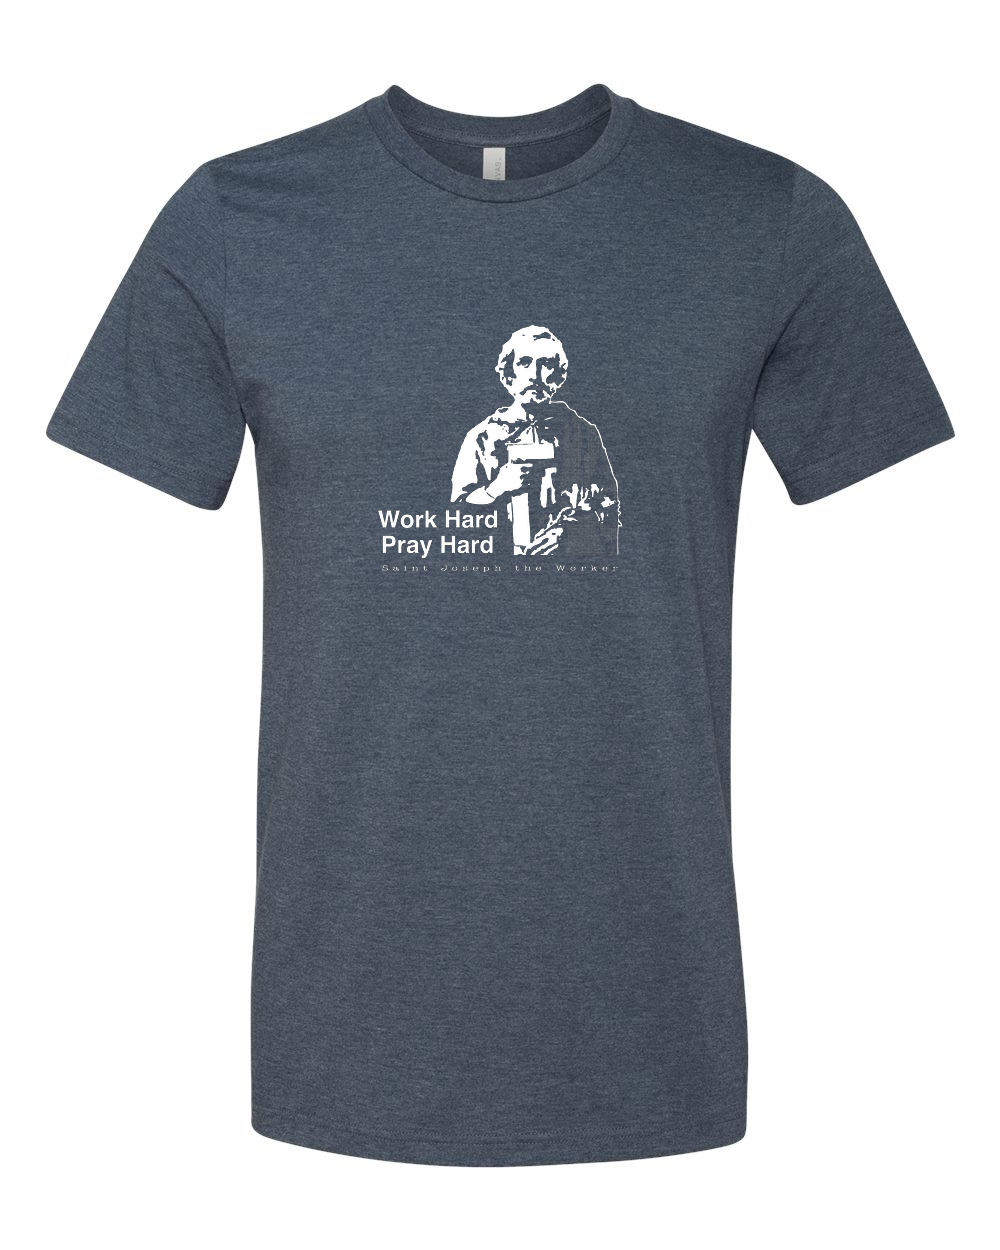 Work Hard Pray Hard - St. Joseph the Worker T Shirt - That One Sheep